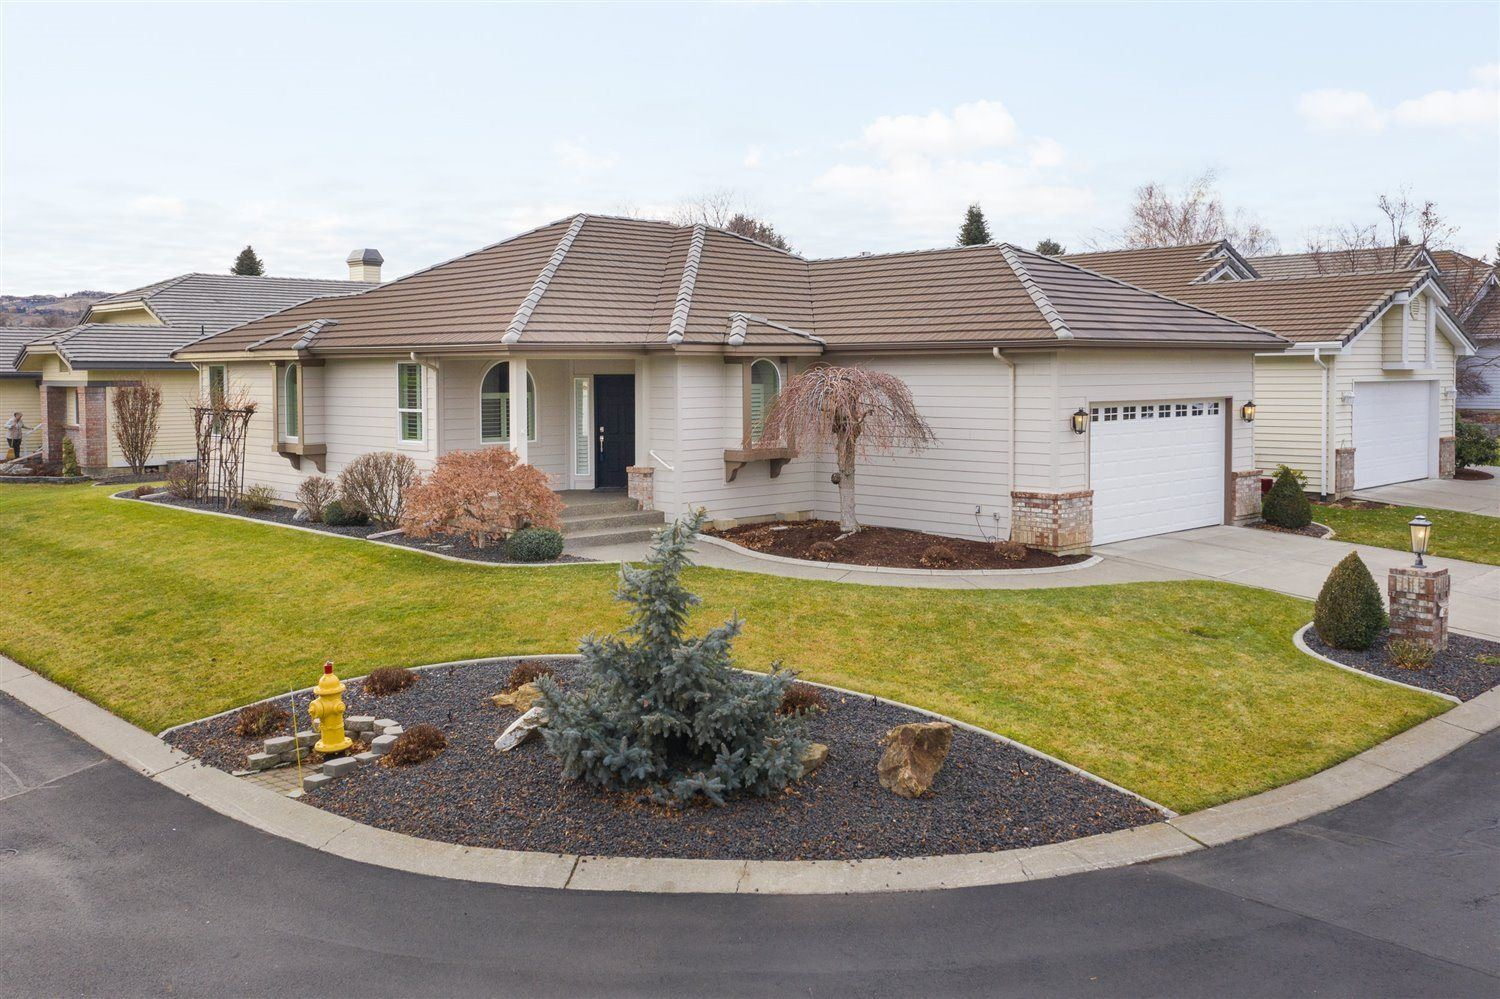 505 N Village Ln, Liberty Lake, WA 99019 - #: 202110477